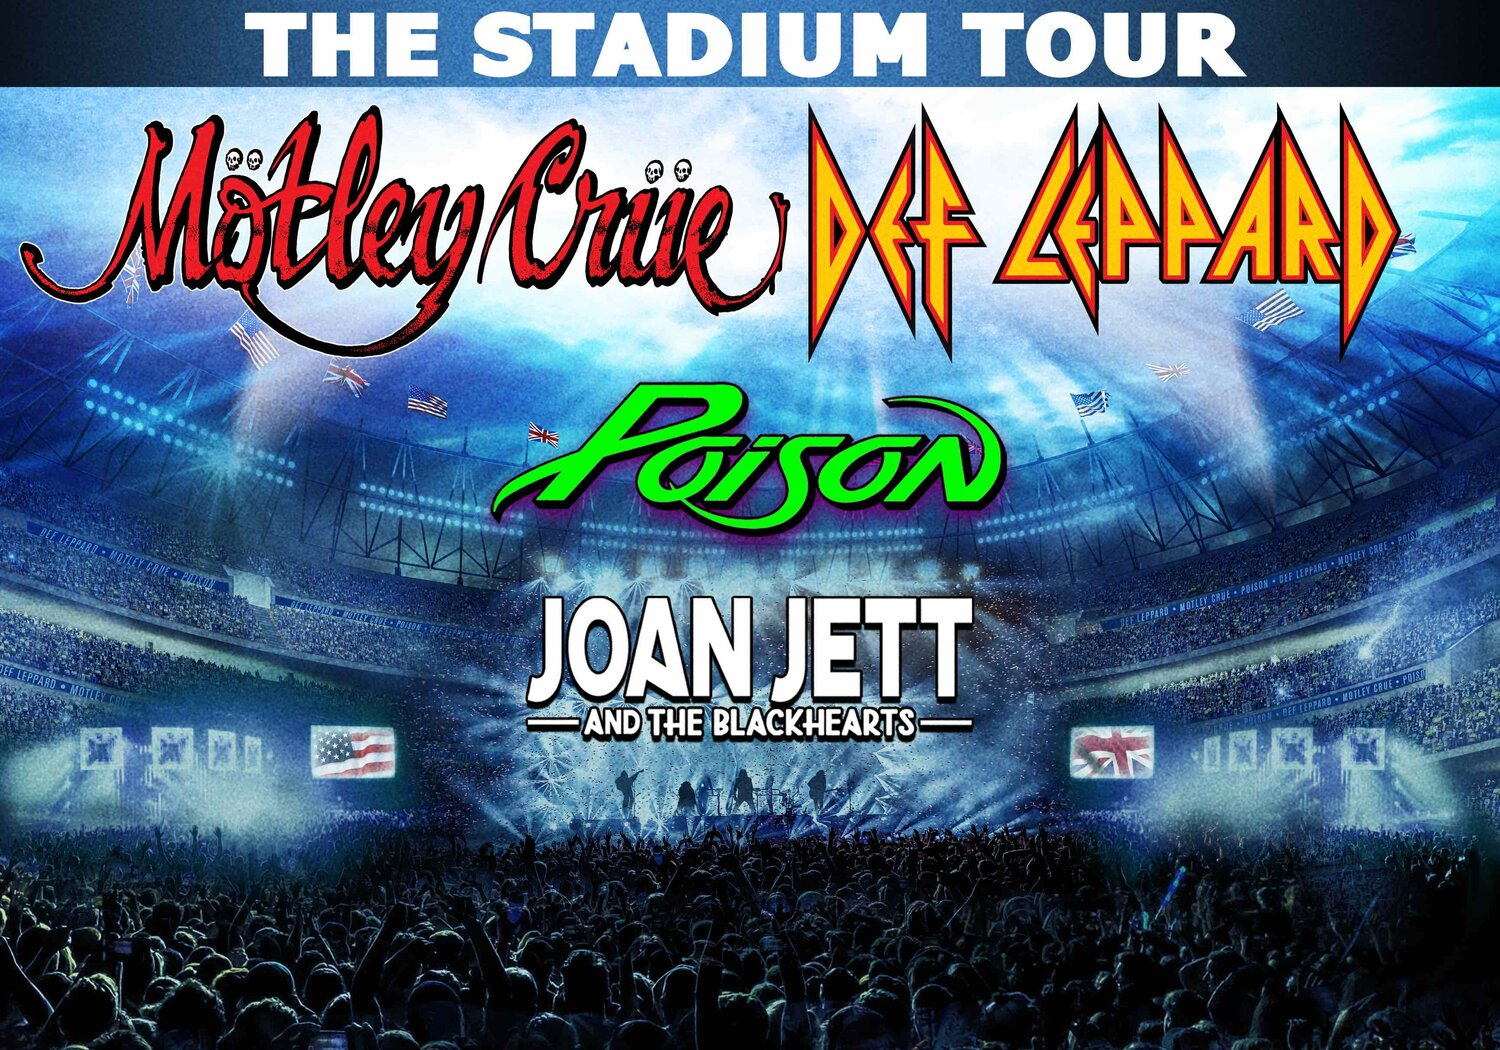 Motley Crue To Tour With Def Leppard, Poison, and Joan Jett